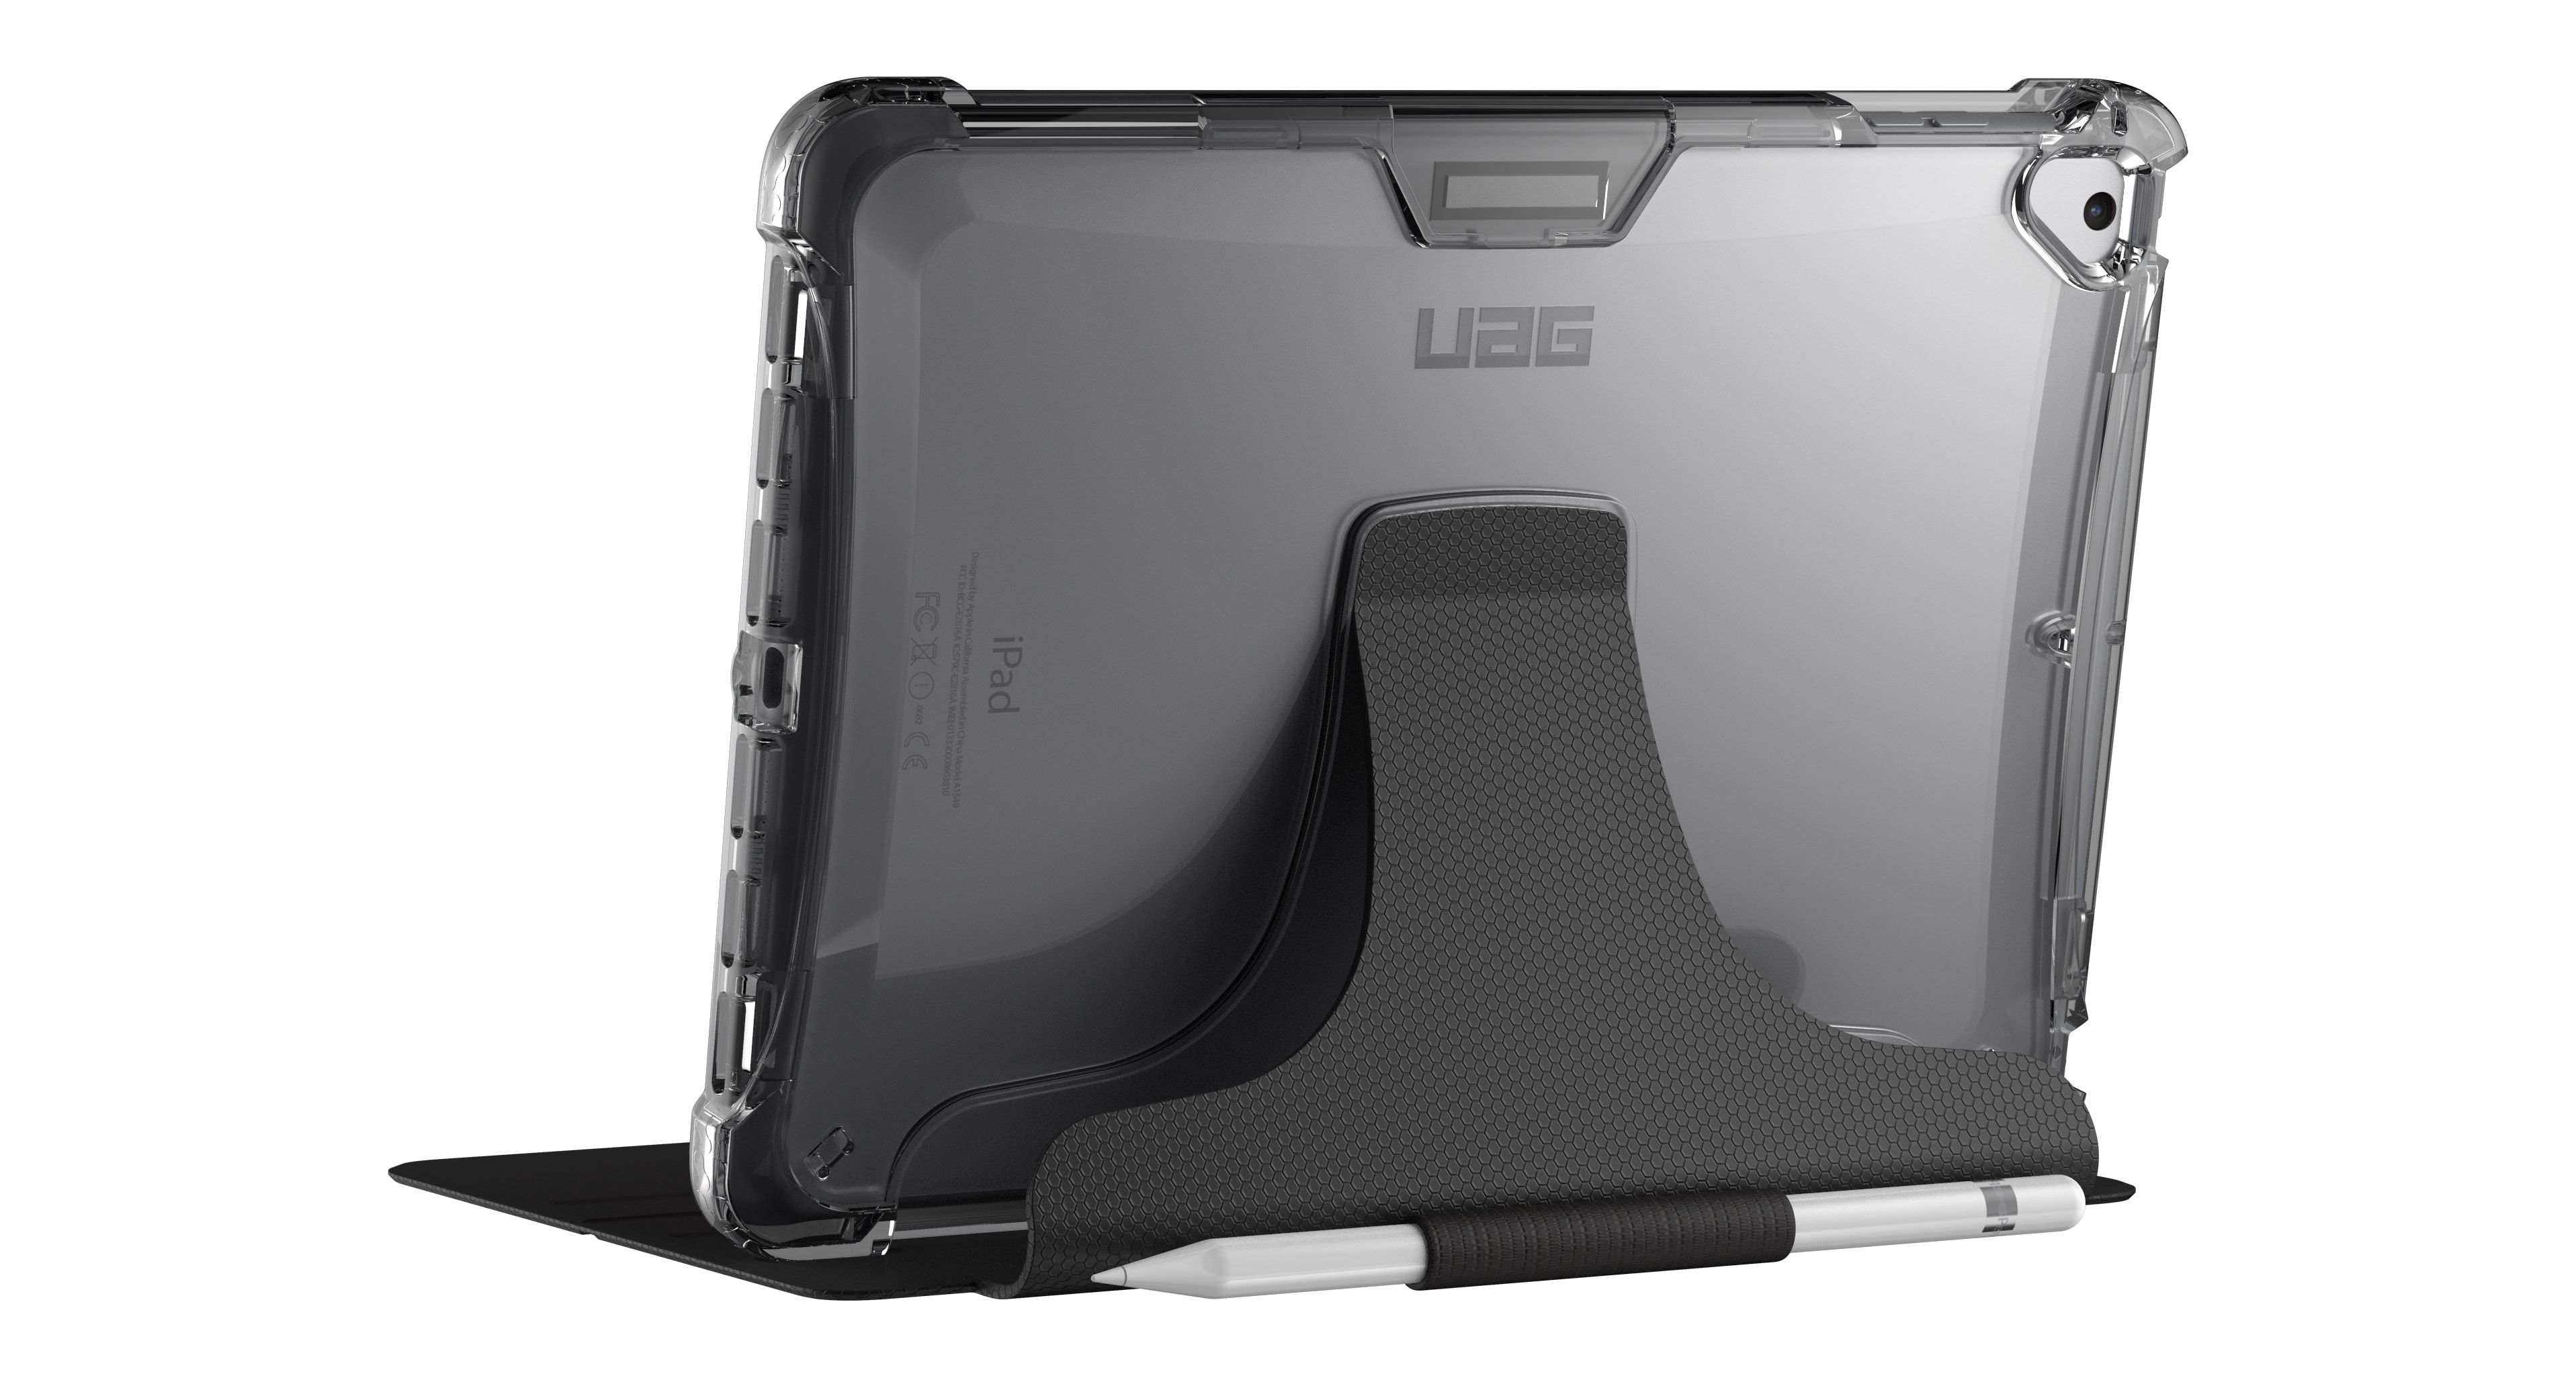 Despite being semi-transparent, UAG's Plyo Series meets military drop-test standards.